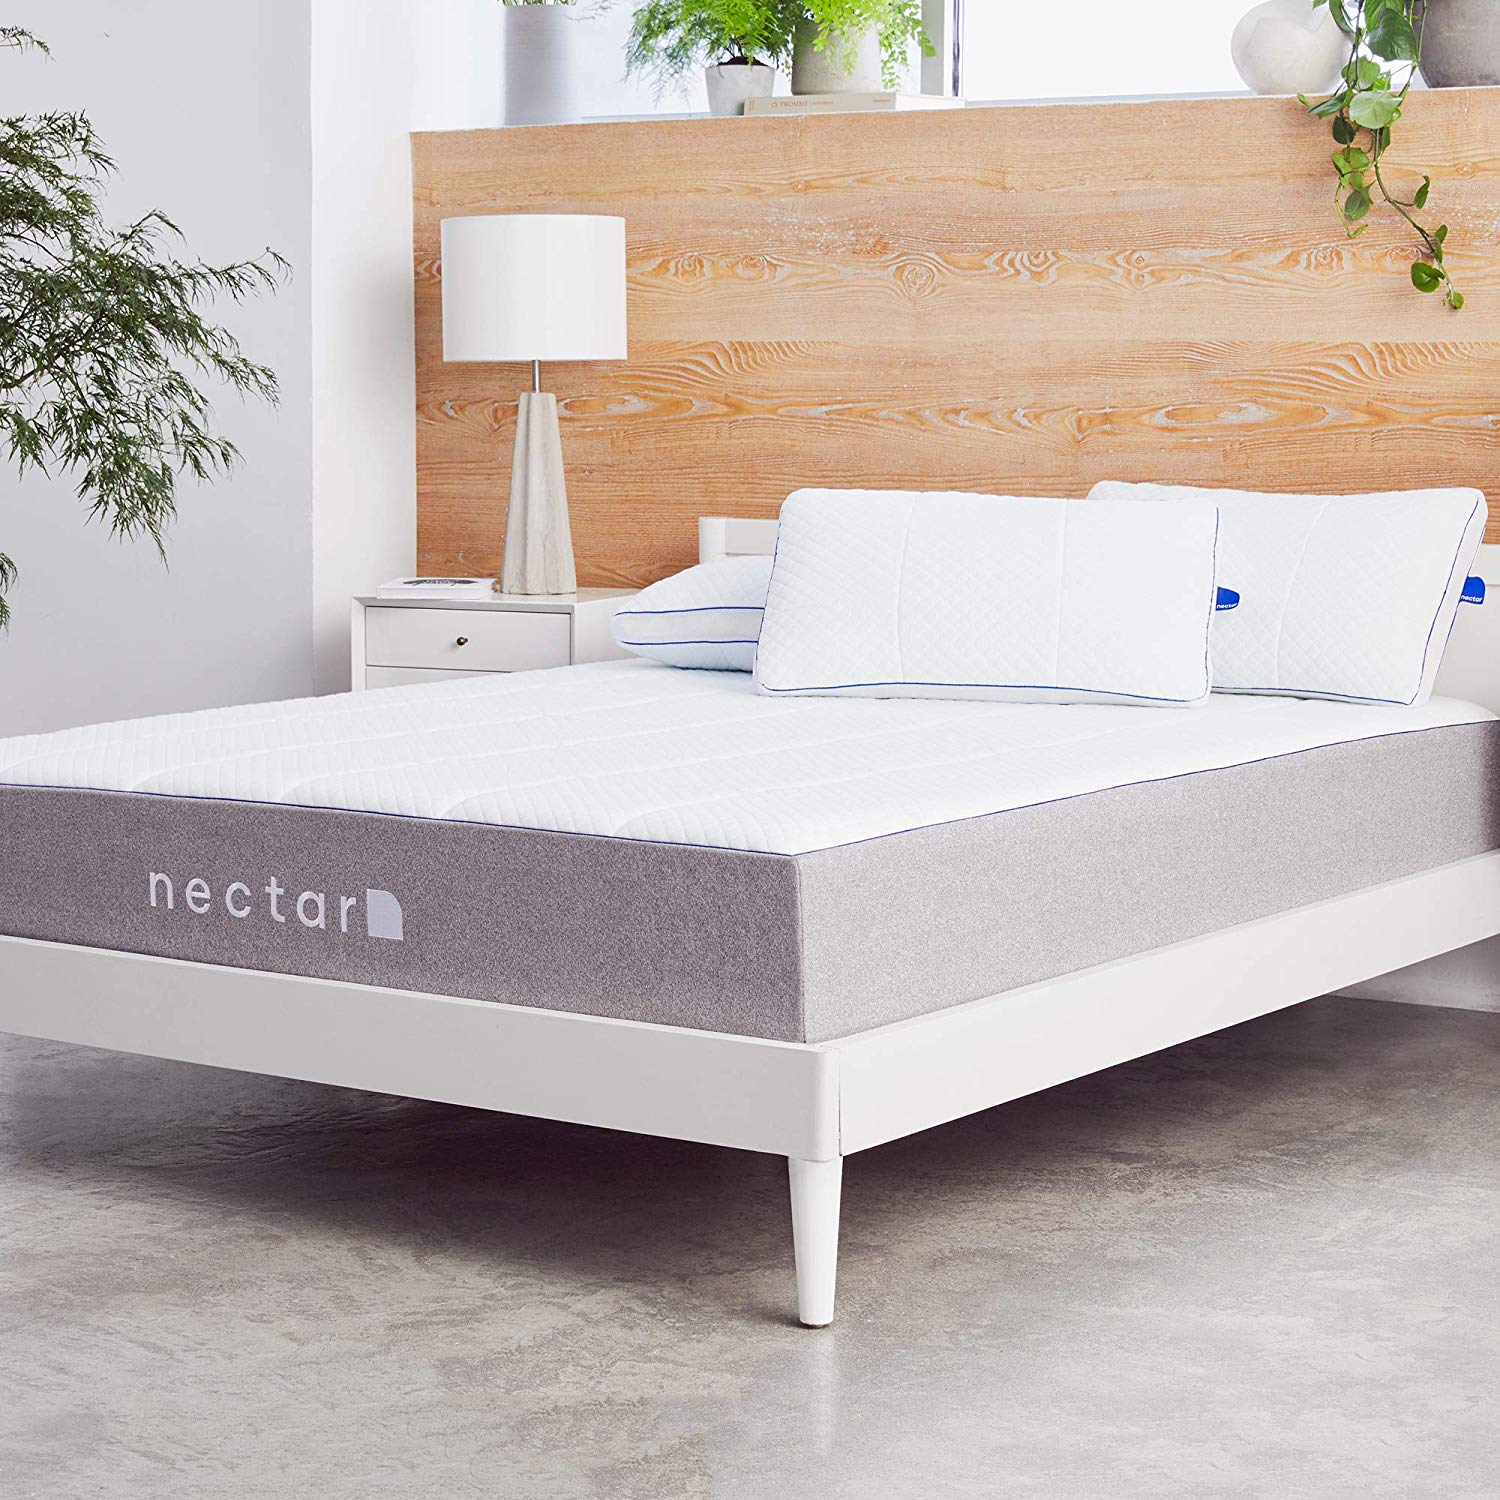 Nectar mattress for platform bed with slats